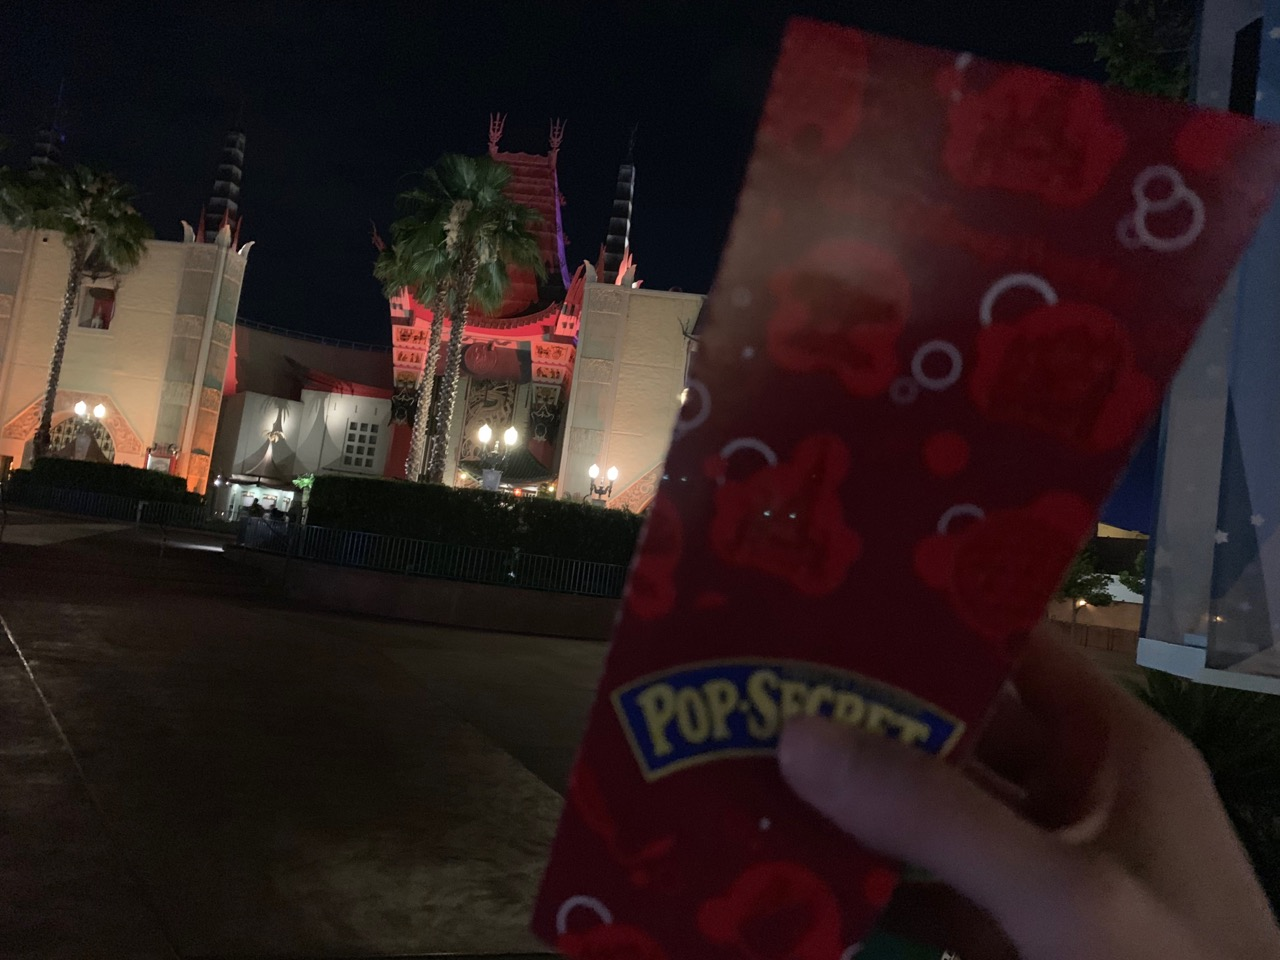 disney world hollywood studios after hours review 43 popcorn.jpeg